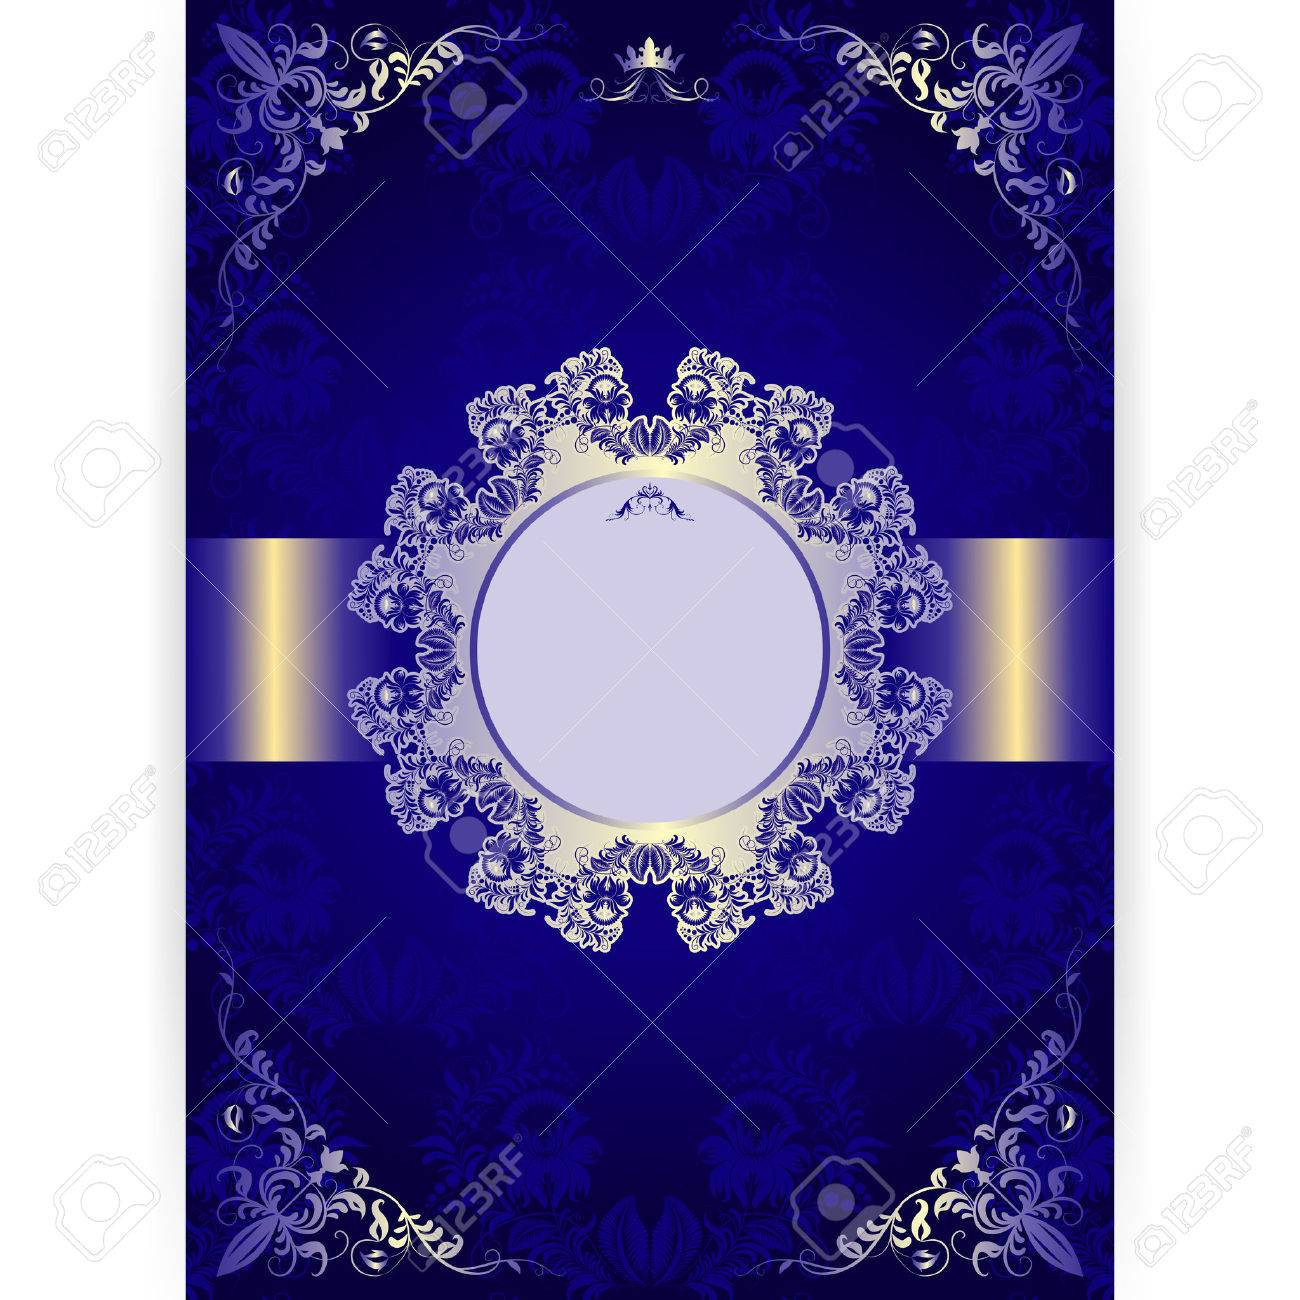 vector royal invitation card in an old style on seamless background